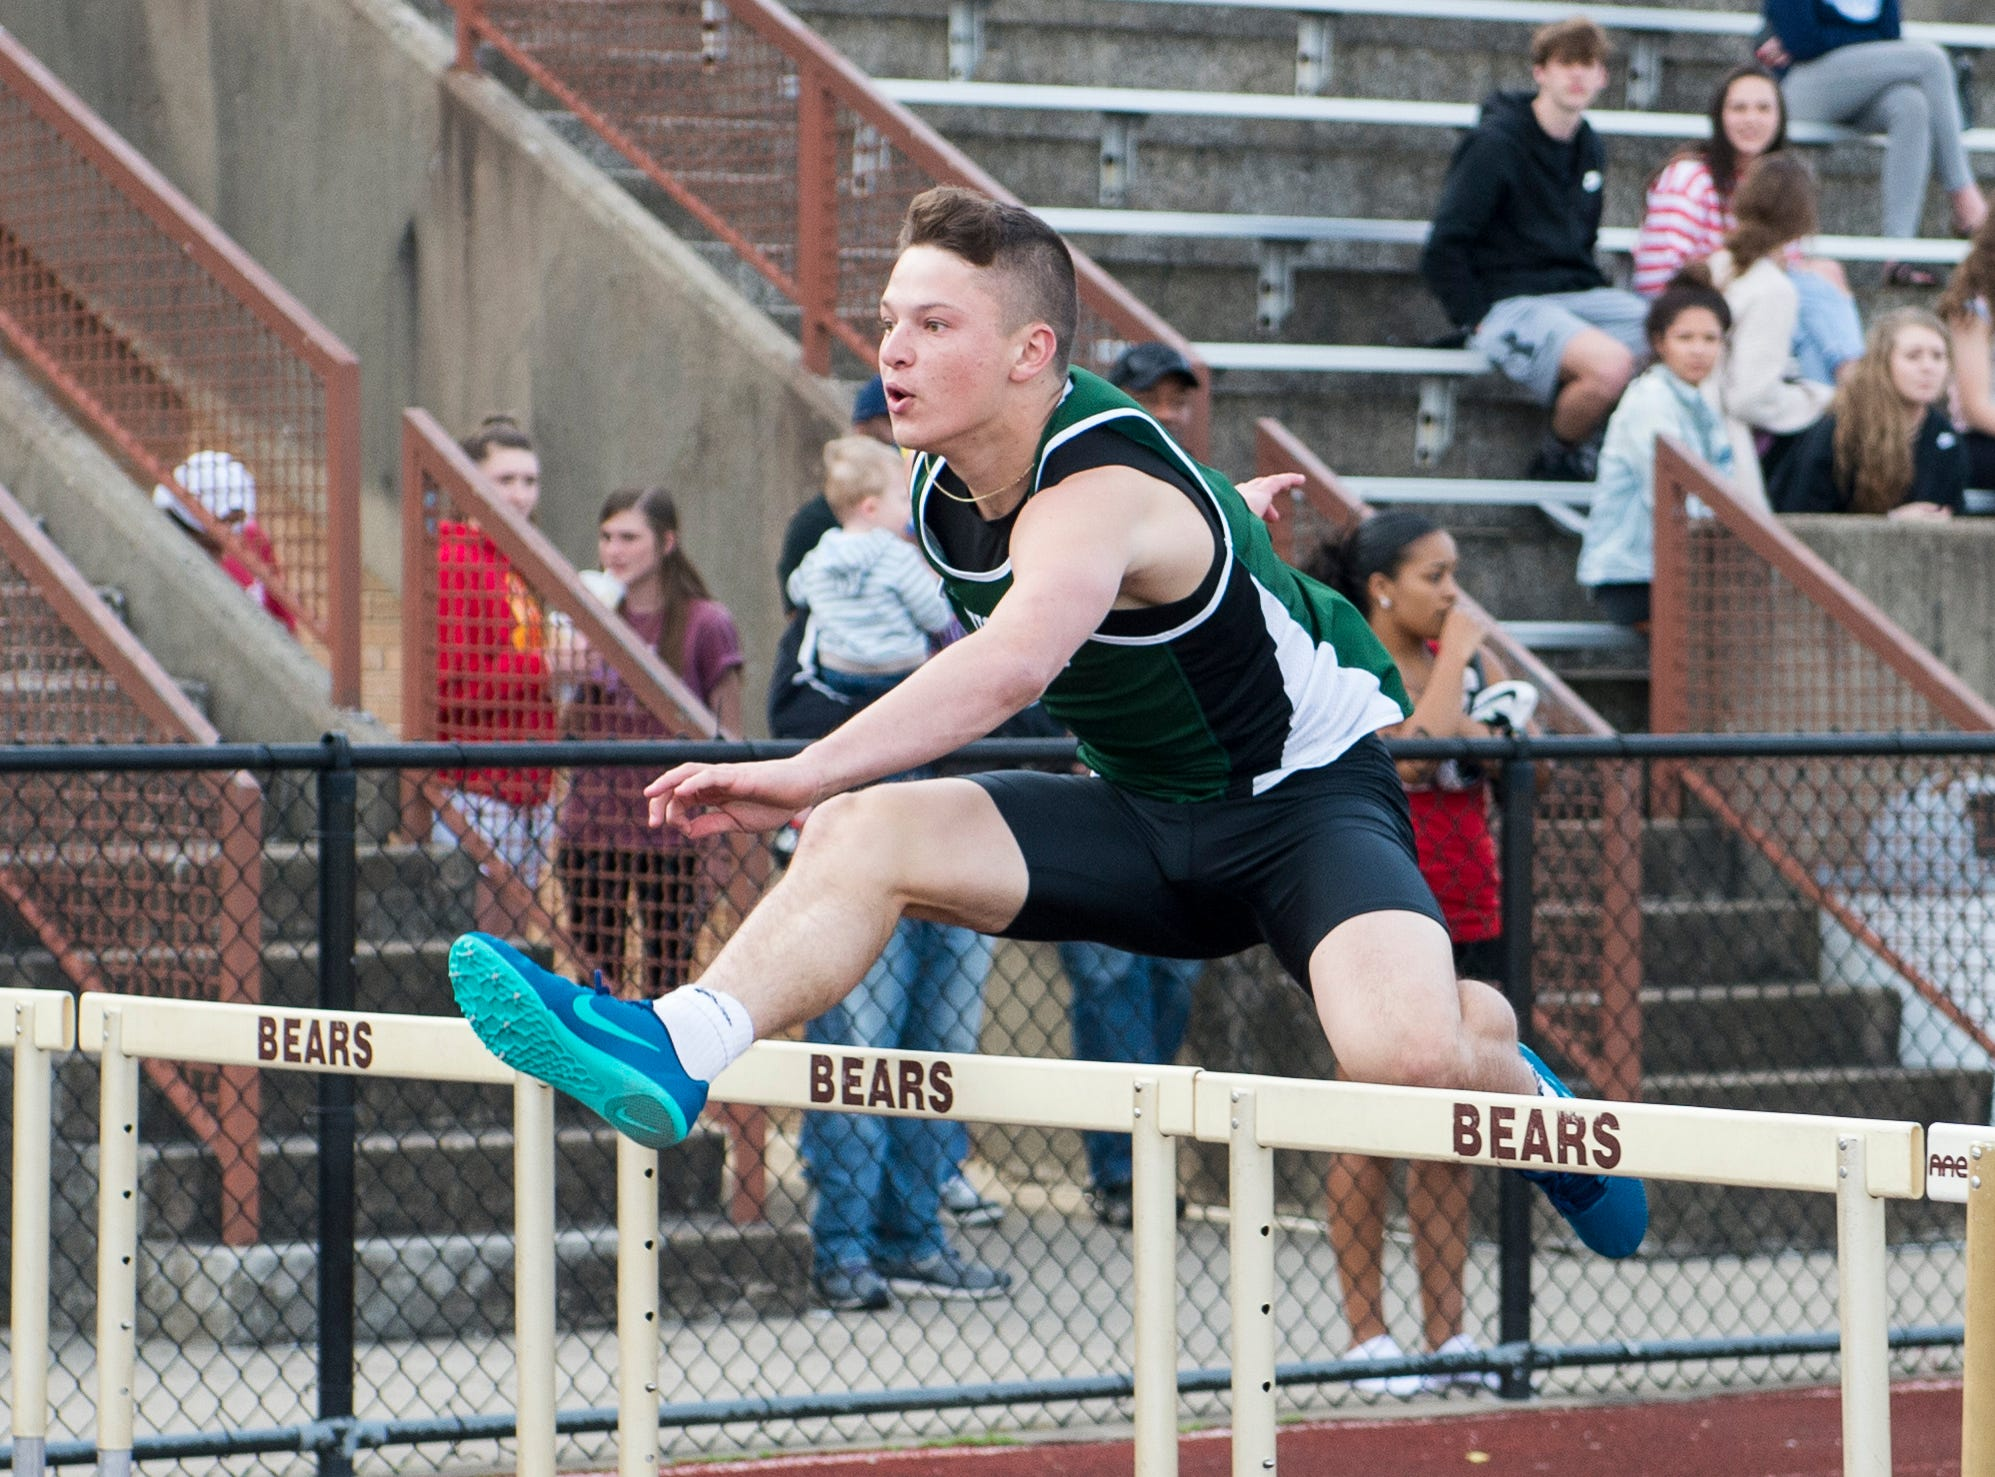 North's Dylan McKinney clears a hurdle in the boys 110m high hurdle event during the 2019 City Track and Field meet at Central High School Friday, April 12, 2019.  McKinney took first place in the event at 15.7 seconds.